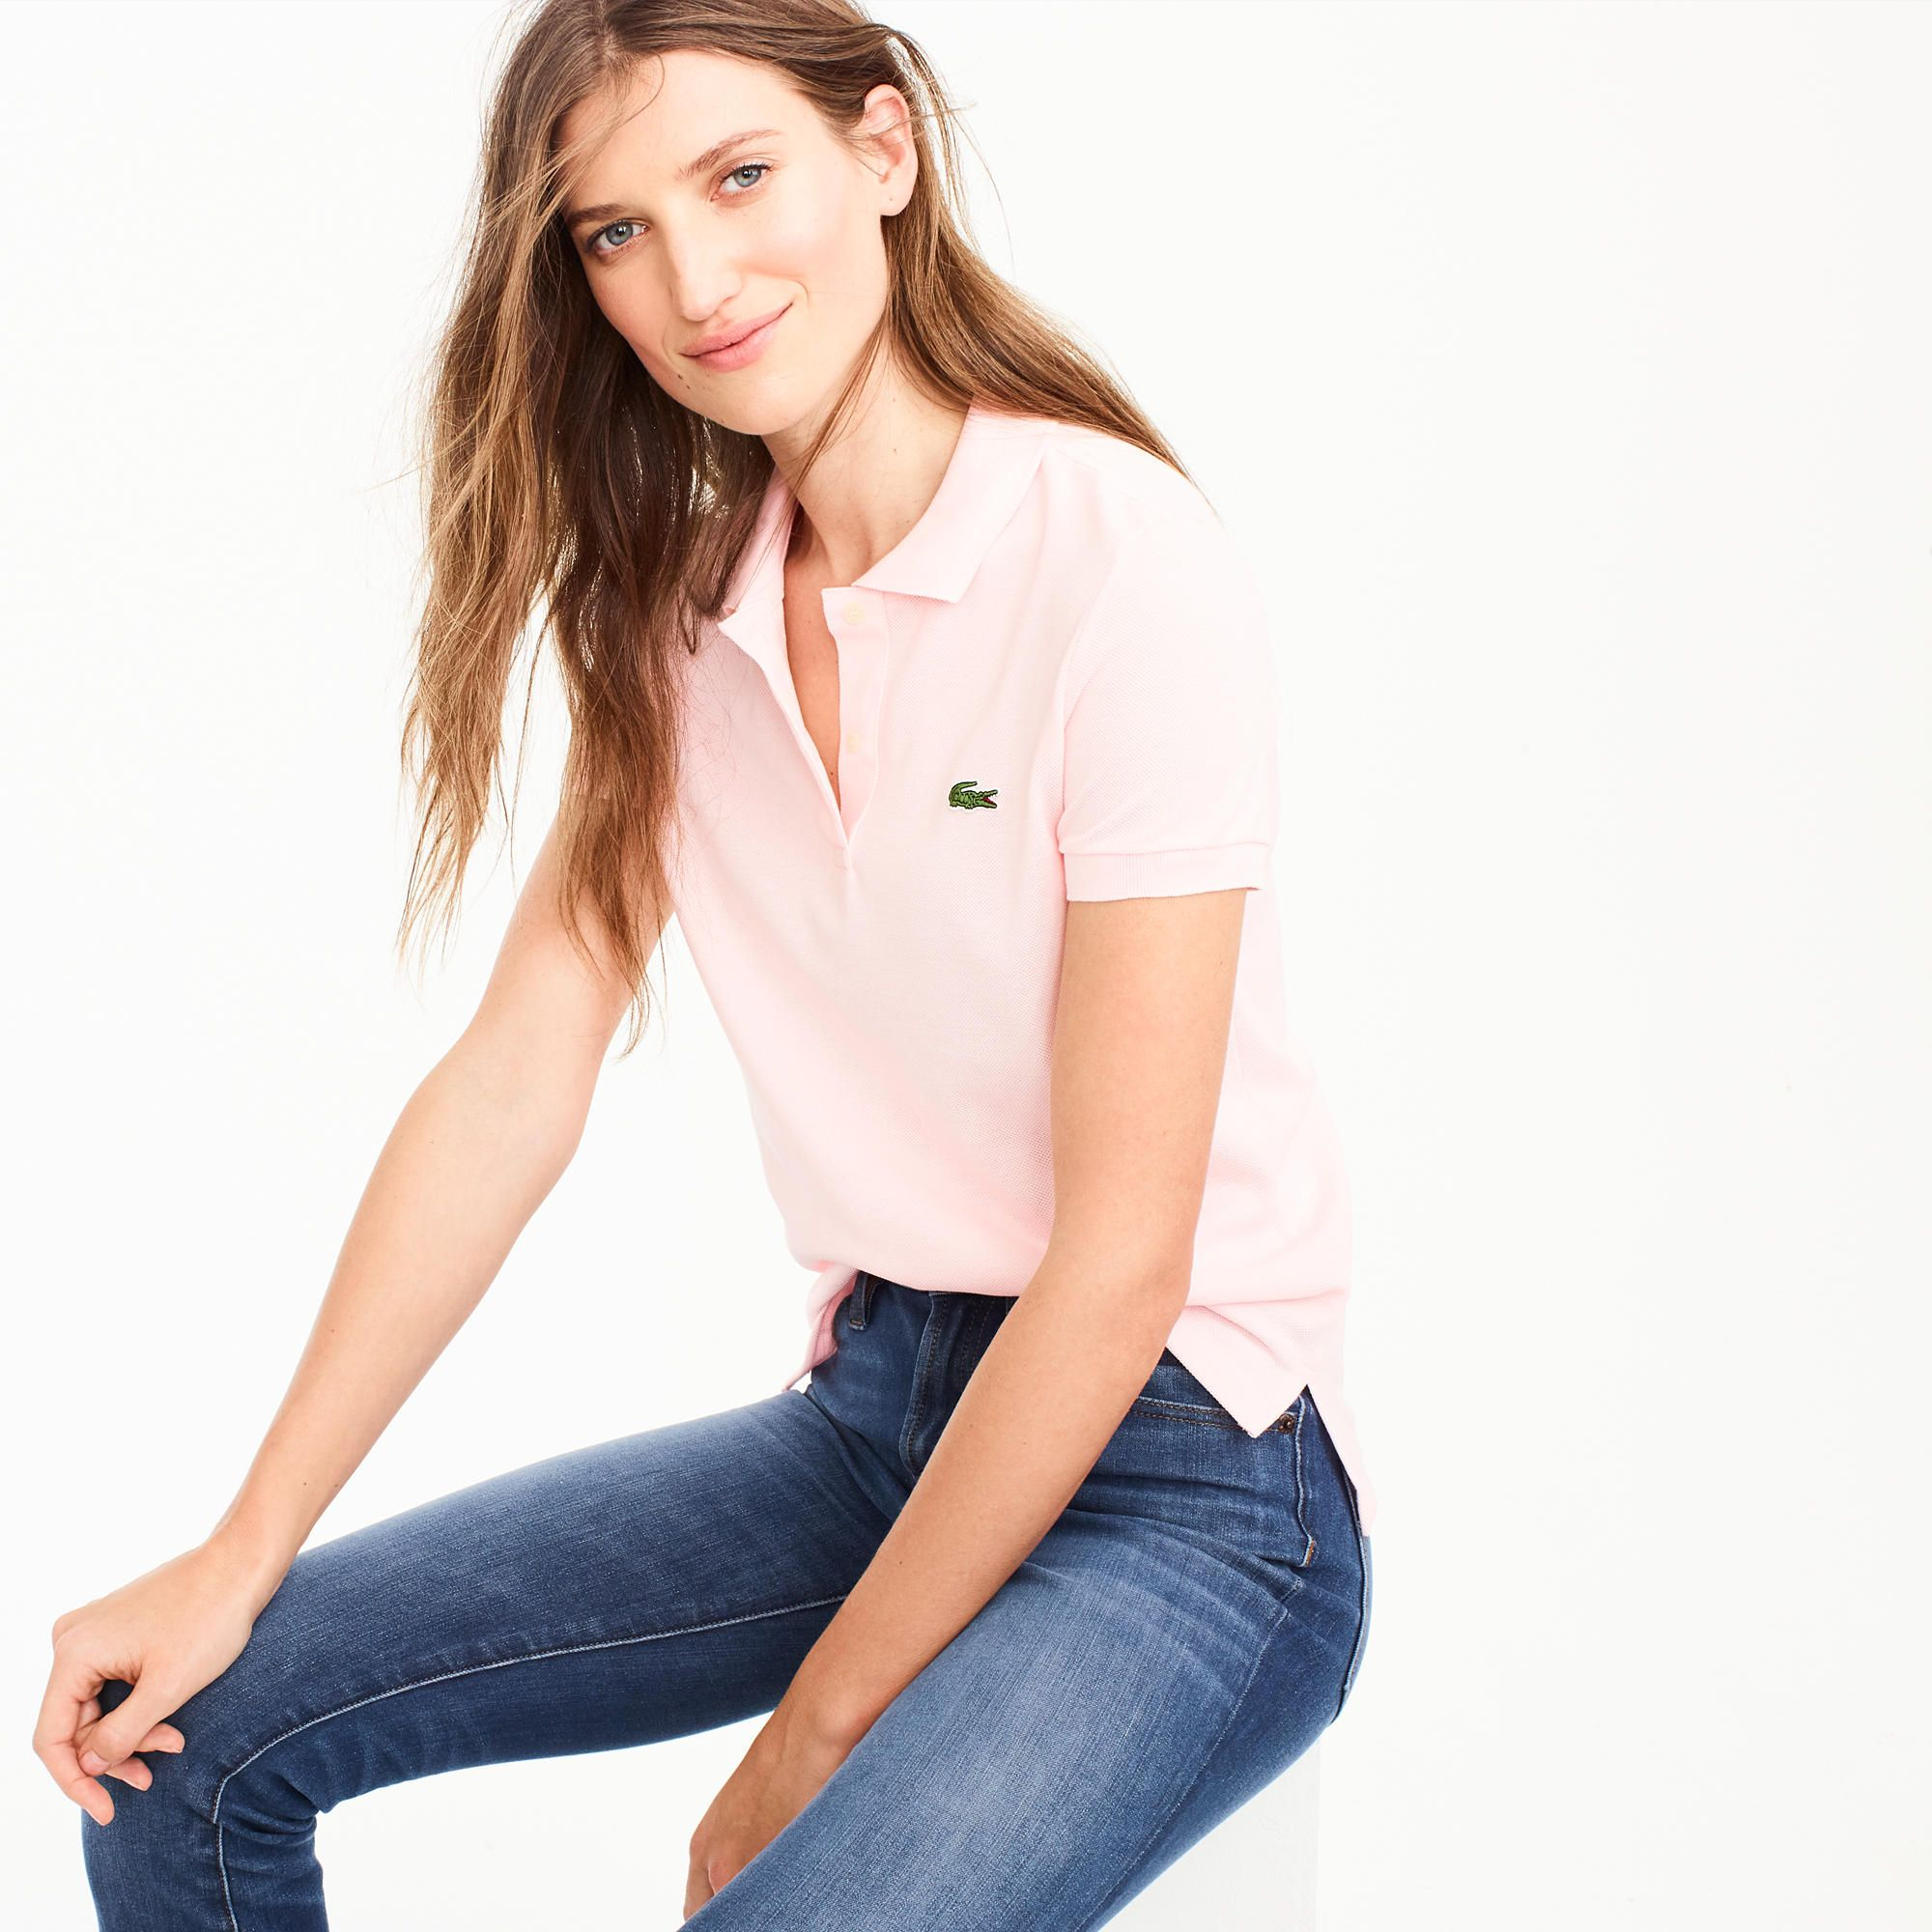 Lacoste For J.Crew Polo Shirt   Women s Polo Shirts  9240ff683